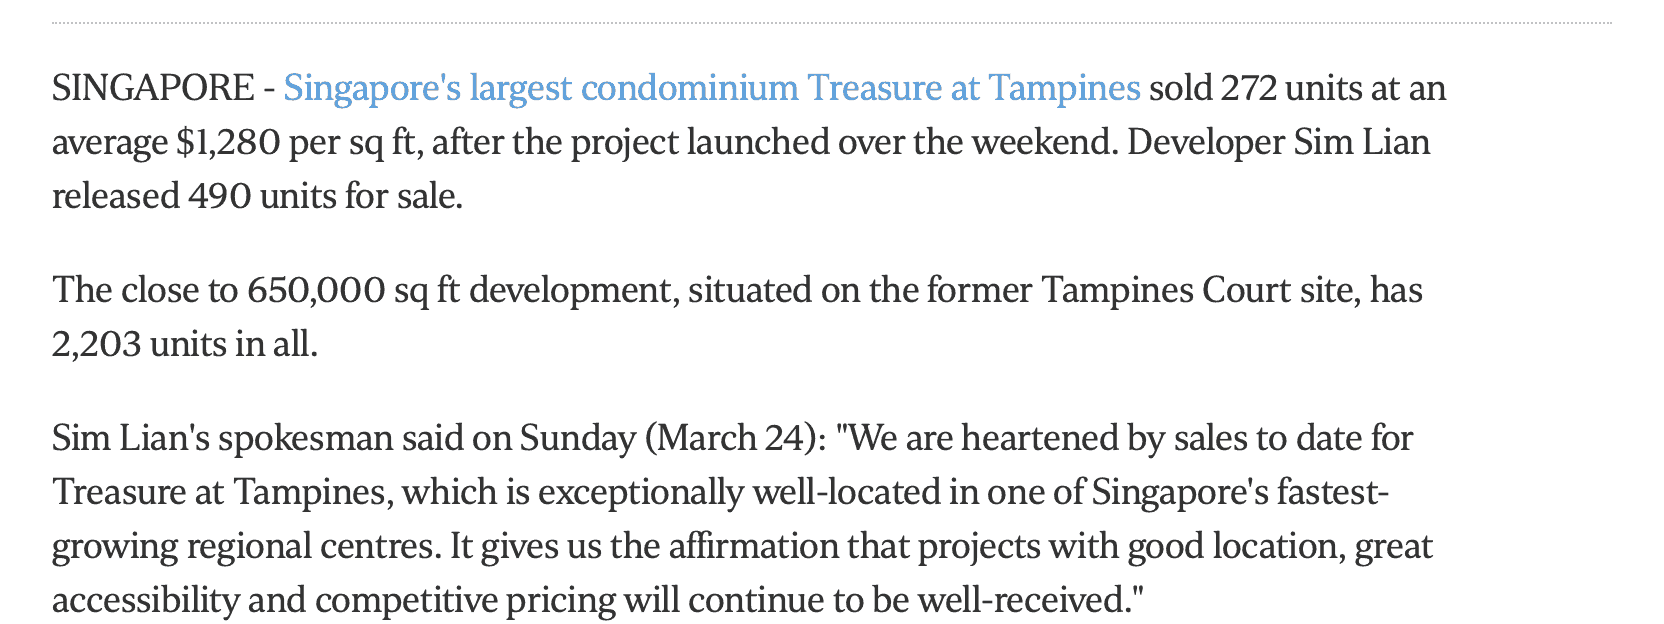 treasures-ats-tampines-news-20190325-02-singapore